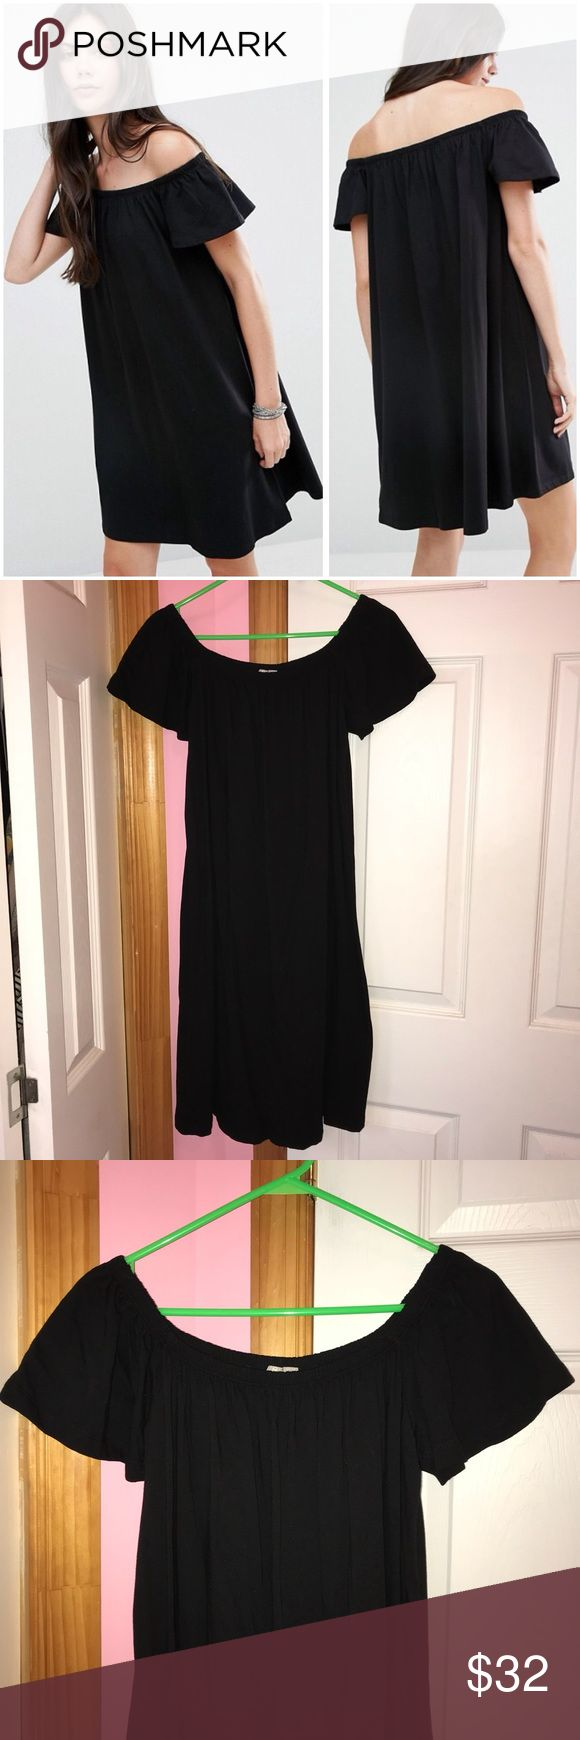 ✨1 HR SALE✨ ASOS Tall Off the Shoulder Dress ✨Sale price is firm.✨ Only tried on and has been washed. This is ASOS tall. Color is black. Has a stretch bardot neckline. 100% cotton. Fits true to size though is a relaxed fit. Stock photos from ASOS. ❌NO TRADES❌ ASOS Dresses